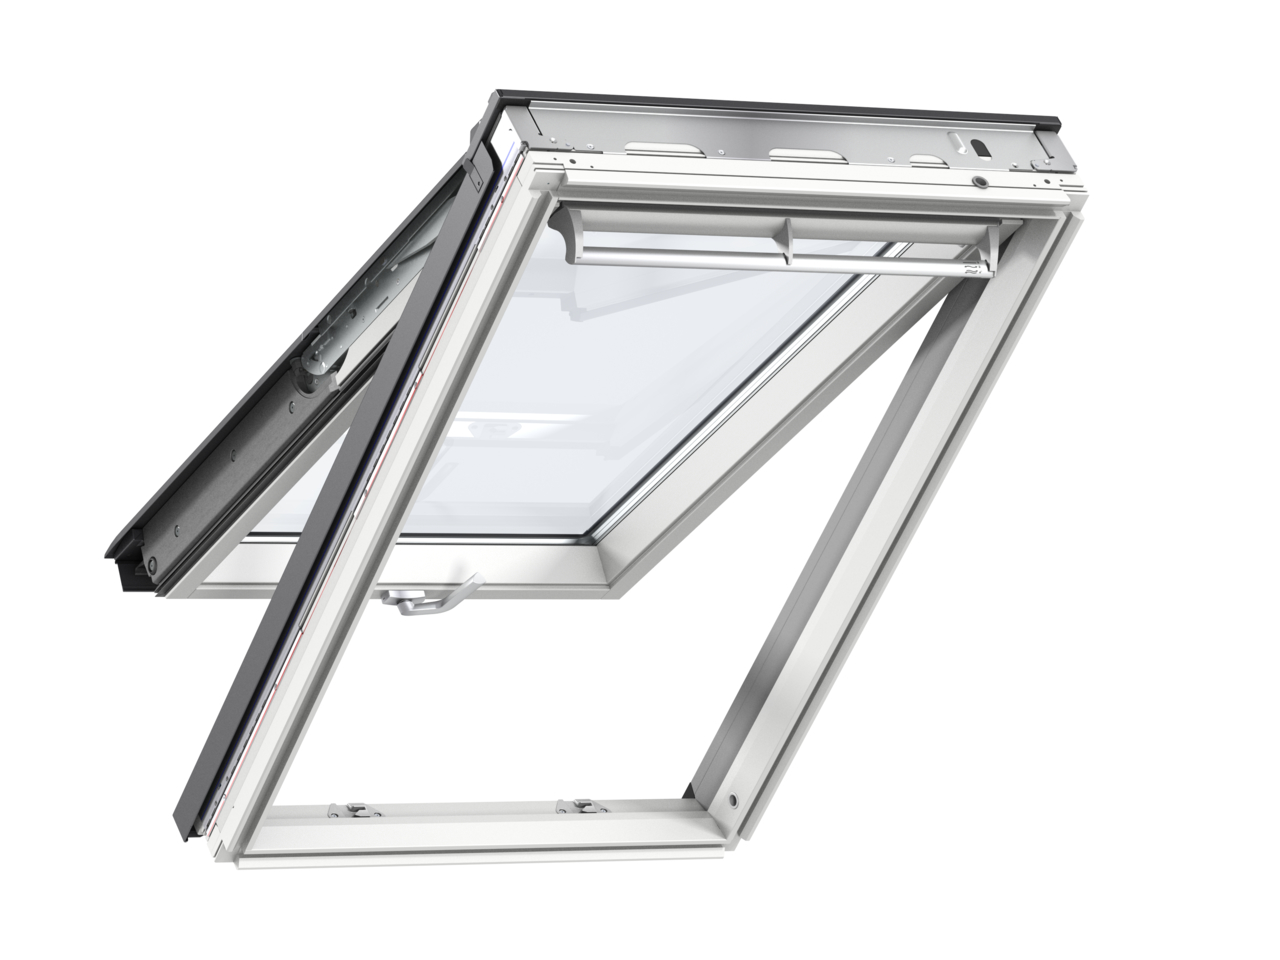 Velux GPL PK10 940 x 1600mm Top Hung Standard 70Pane Roof Window - White Painted